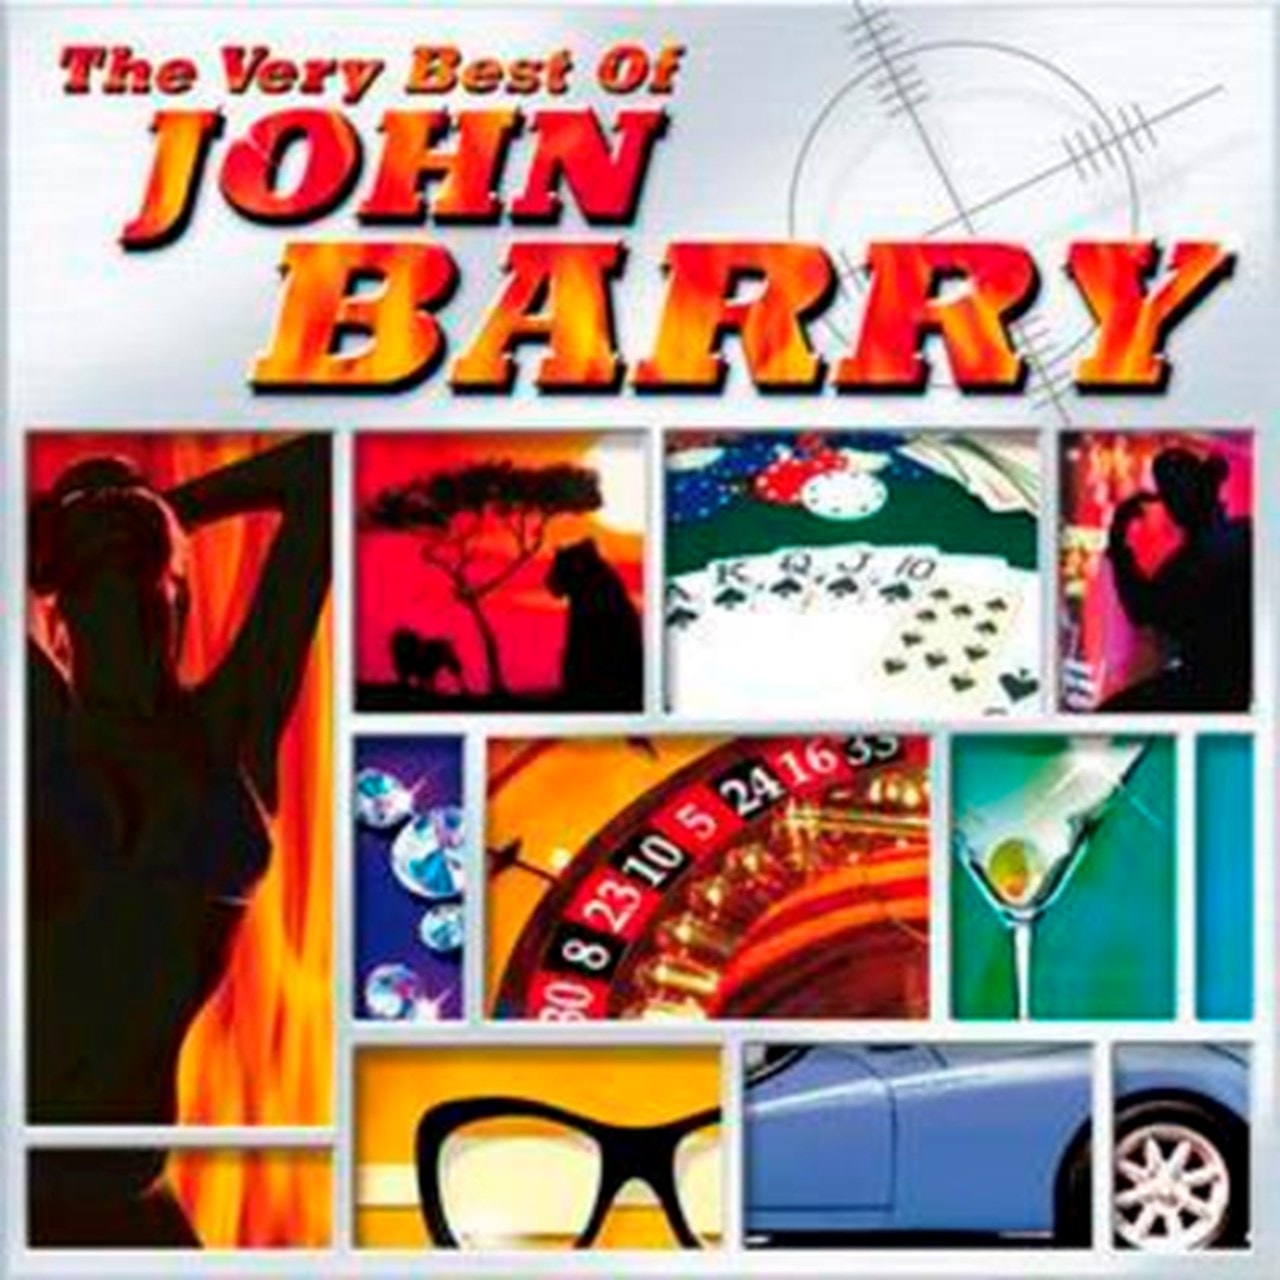 The Very Best of John Barry - 1